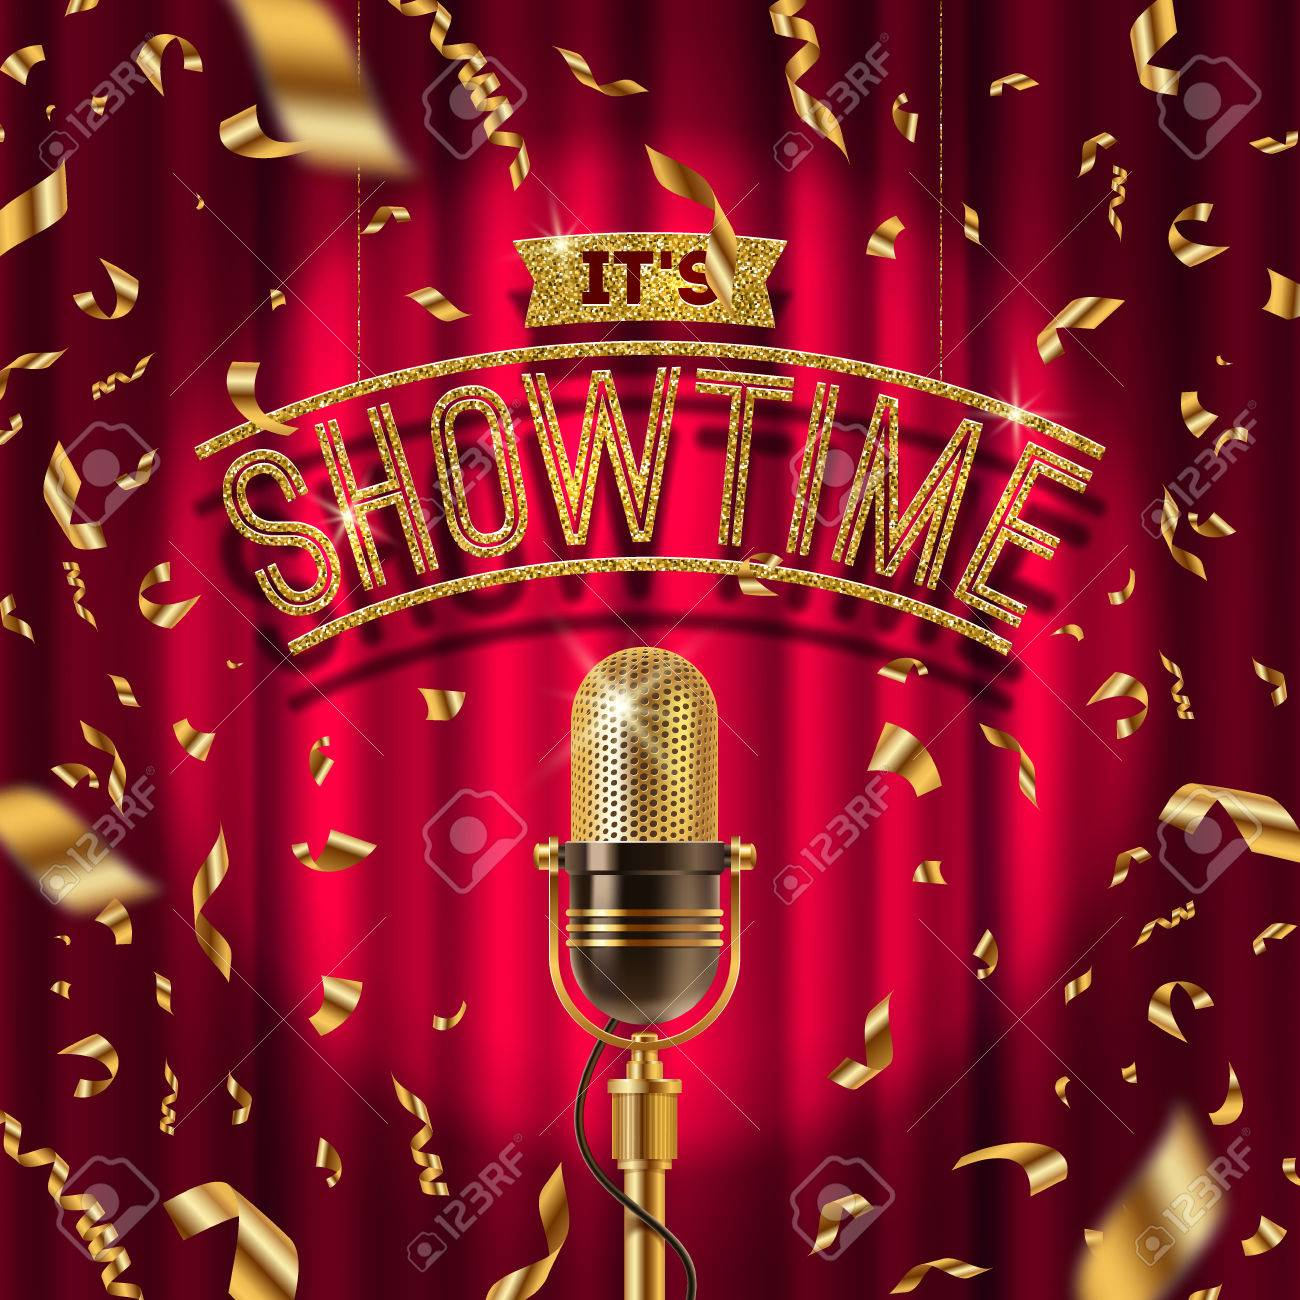 Its Showtime Golden Signboard And Retro Microphone On Stage 1300x1300